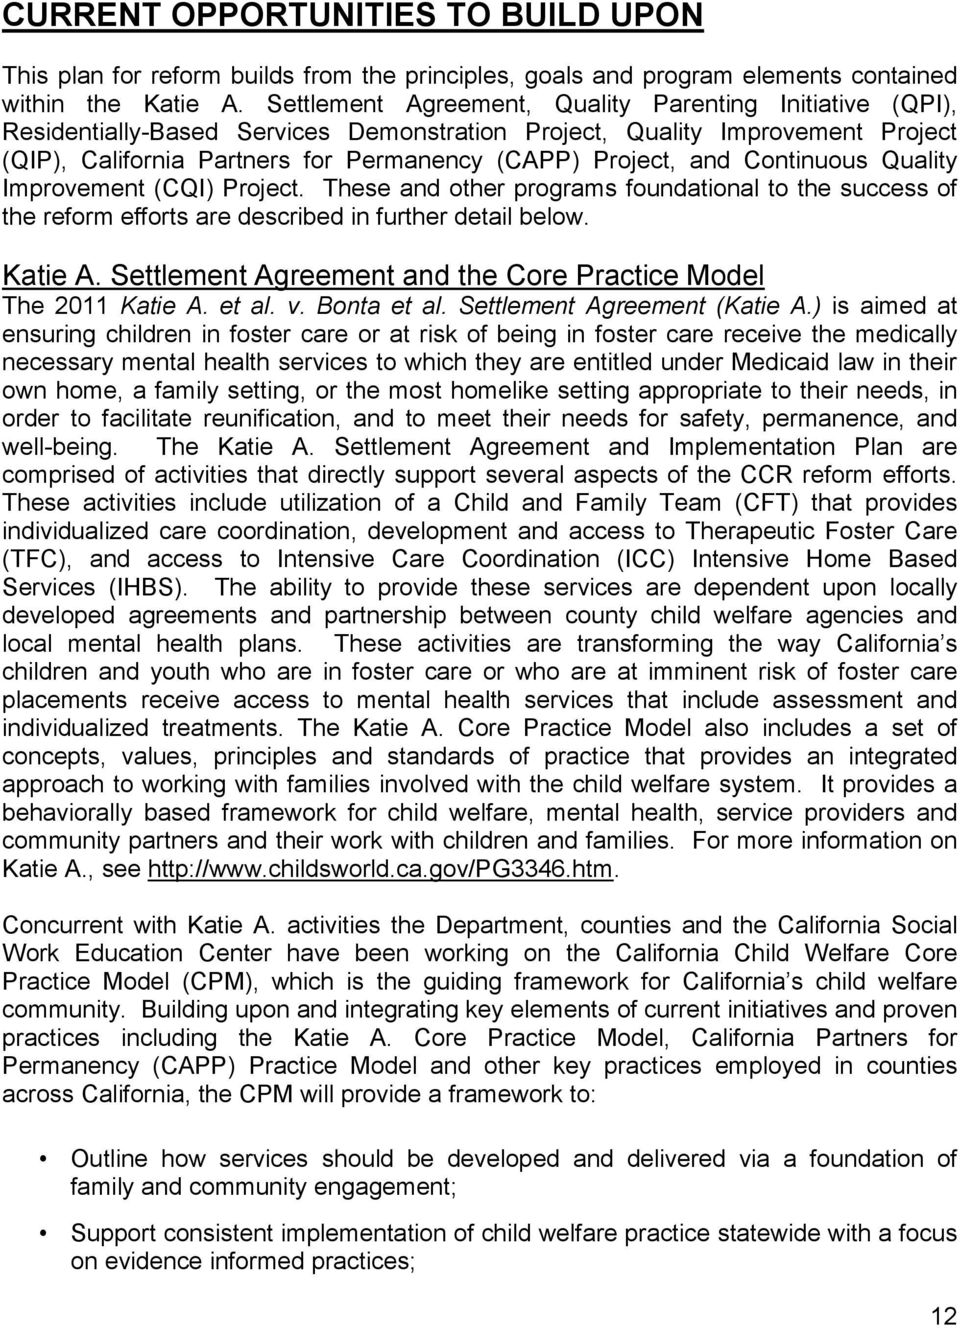 Continuous Quality Improvement (CQI) Project. These and other programs foundational to the success of the reform efforts are described in further detail below. Katie A.